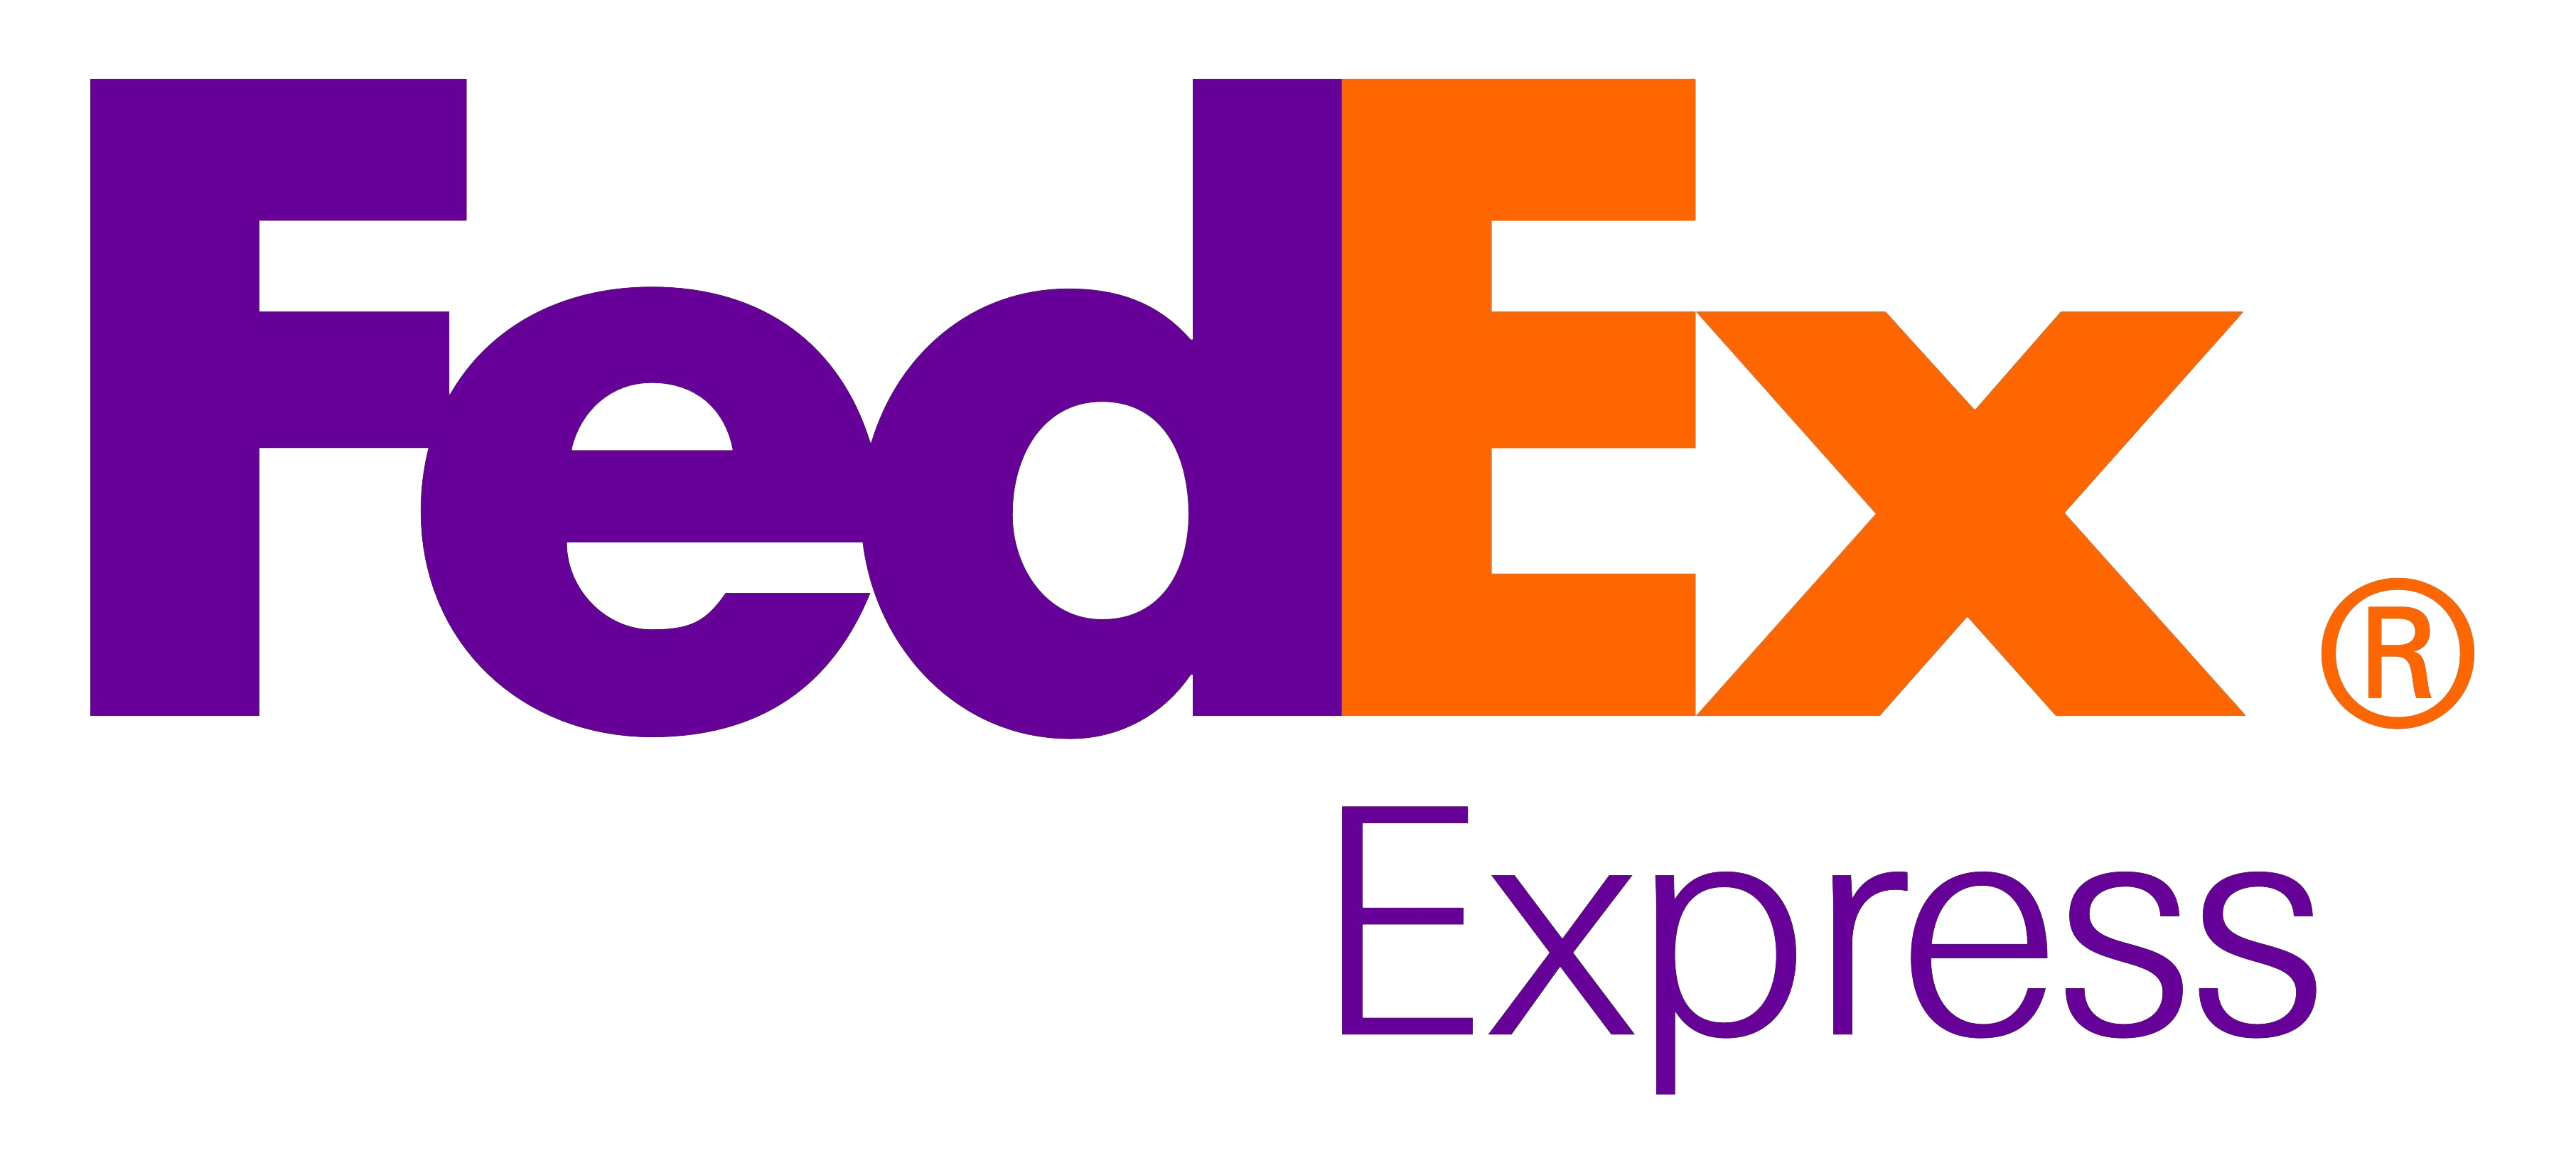 FedEx Express Logo PNG Image Clever logo, Famous logos